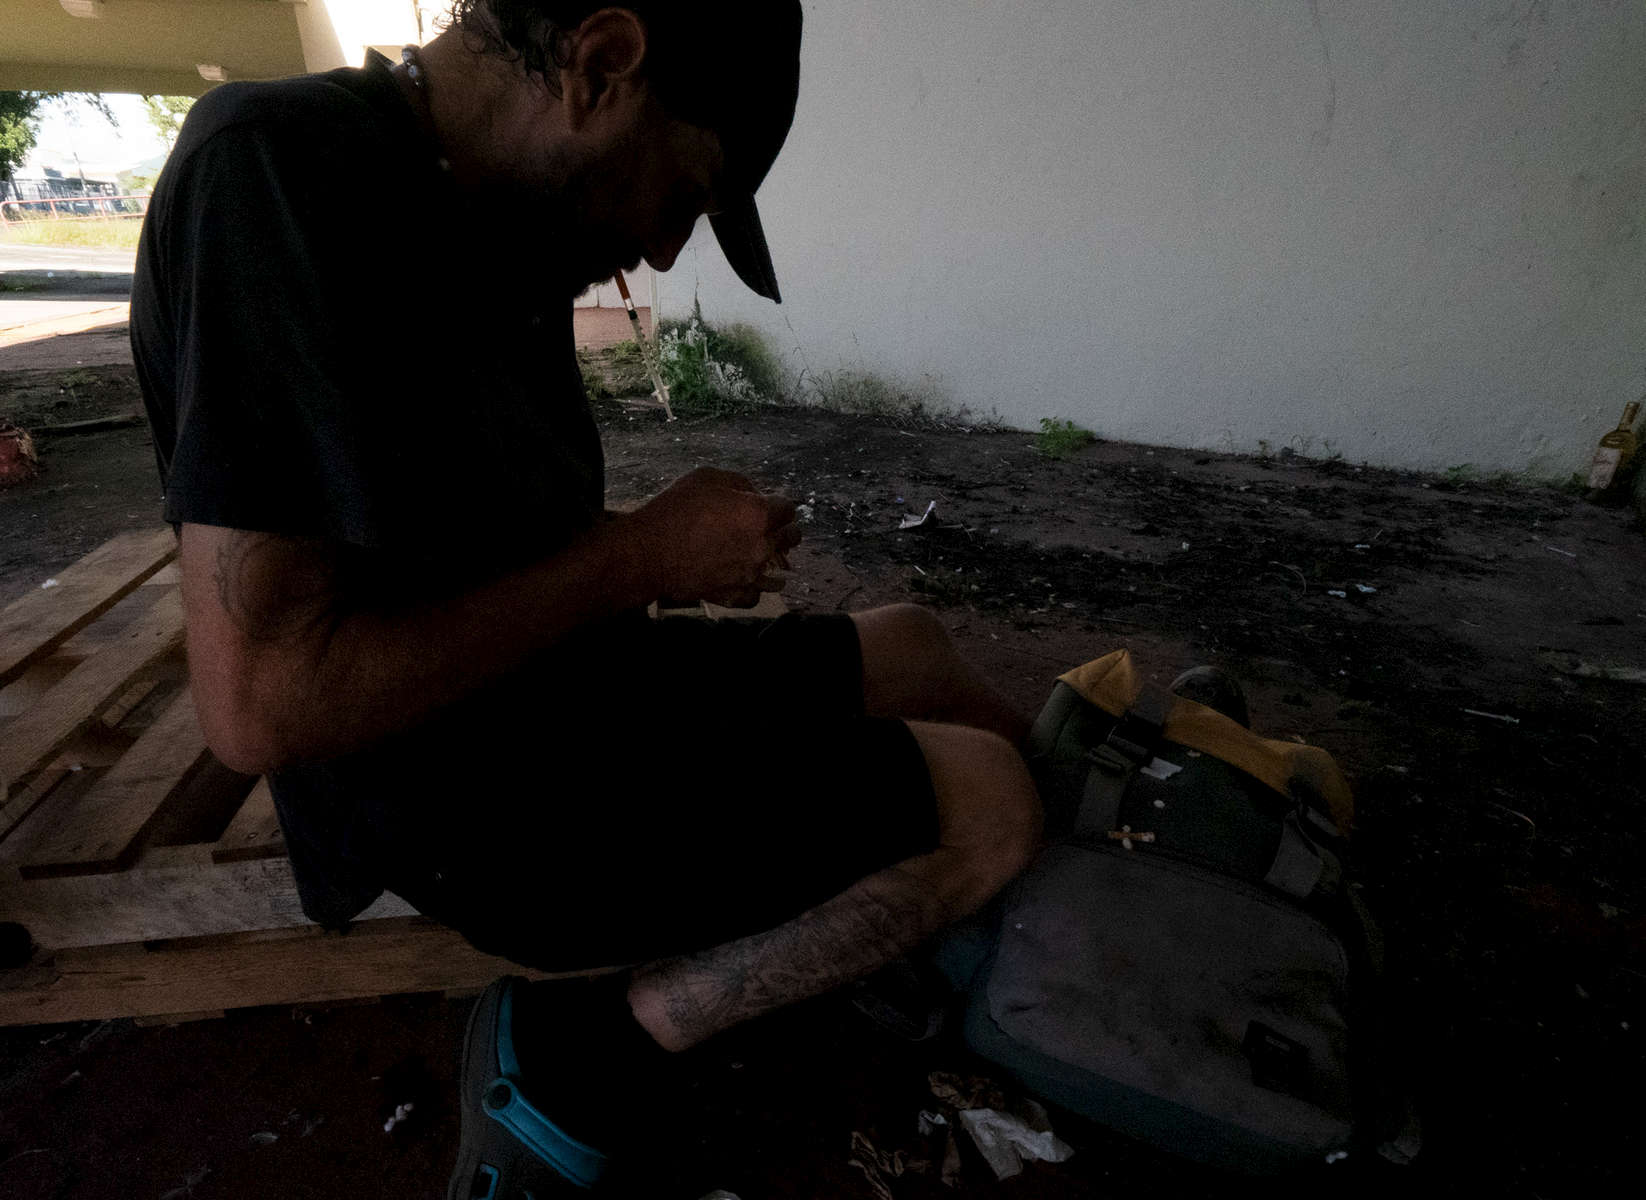 CAGUAS, PUERTO RICO - NOVEMBER 10: A heroin addict prepares to shoot up outside the Yldefonso Sola Morrales Stadium on November 10, 2018 in Caguas, Puerto Rico. It was of thehome of the Puerto Rican baseball League team the Criollos de Caguas.  The stadium is scheduled to be demolished due to the damage done by hurricane Maria.  The effort continues in Puerto Rico to remain and rebuild more than one year after the Hurricane Maria hit and devastated the island on September 20, 2017. The official number of deaths from the disaster is 2,975.